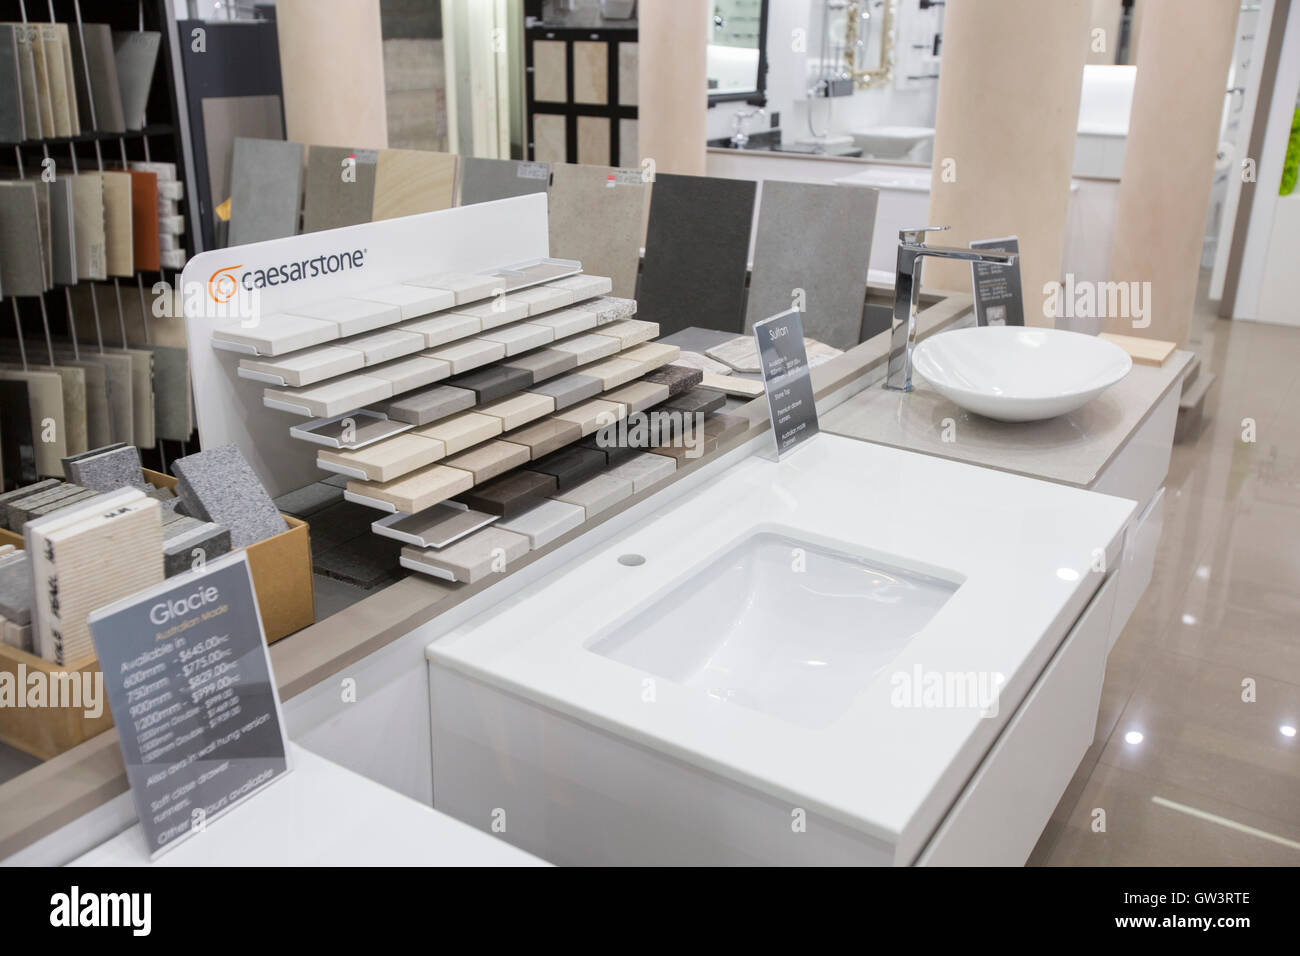 Bathroom Ware Bathroom Sanitary Ware Showroom Retailer Stock Photos